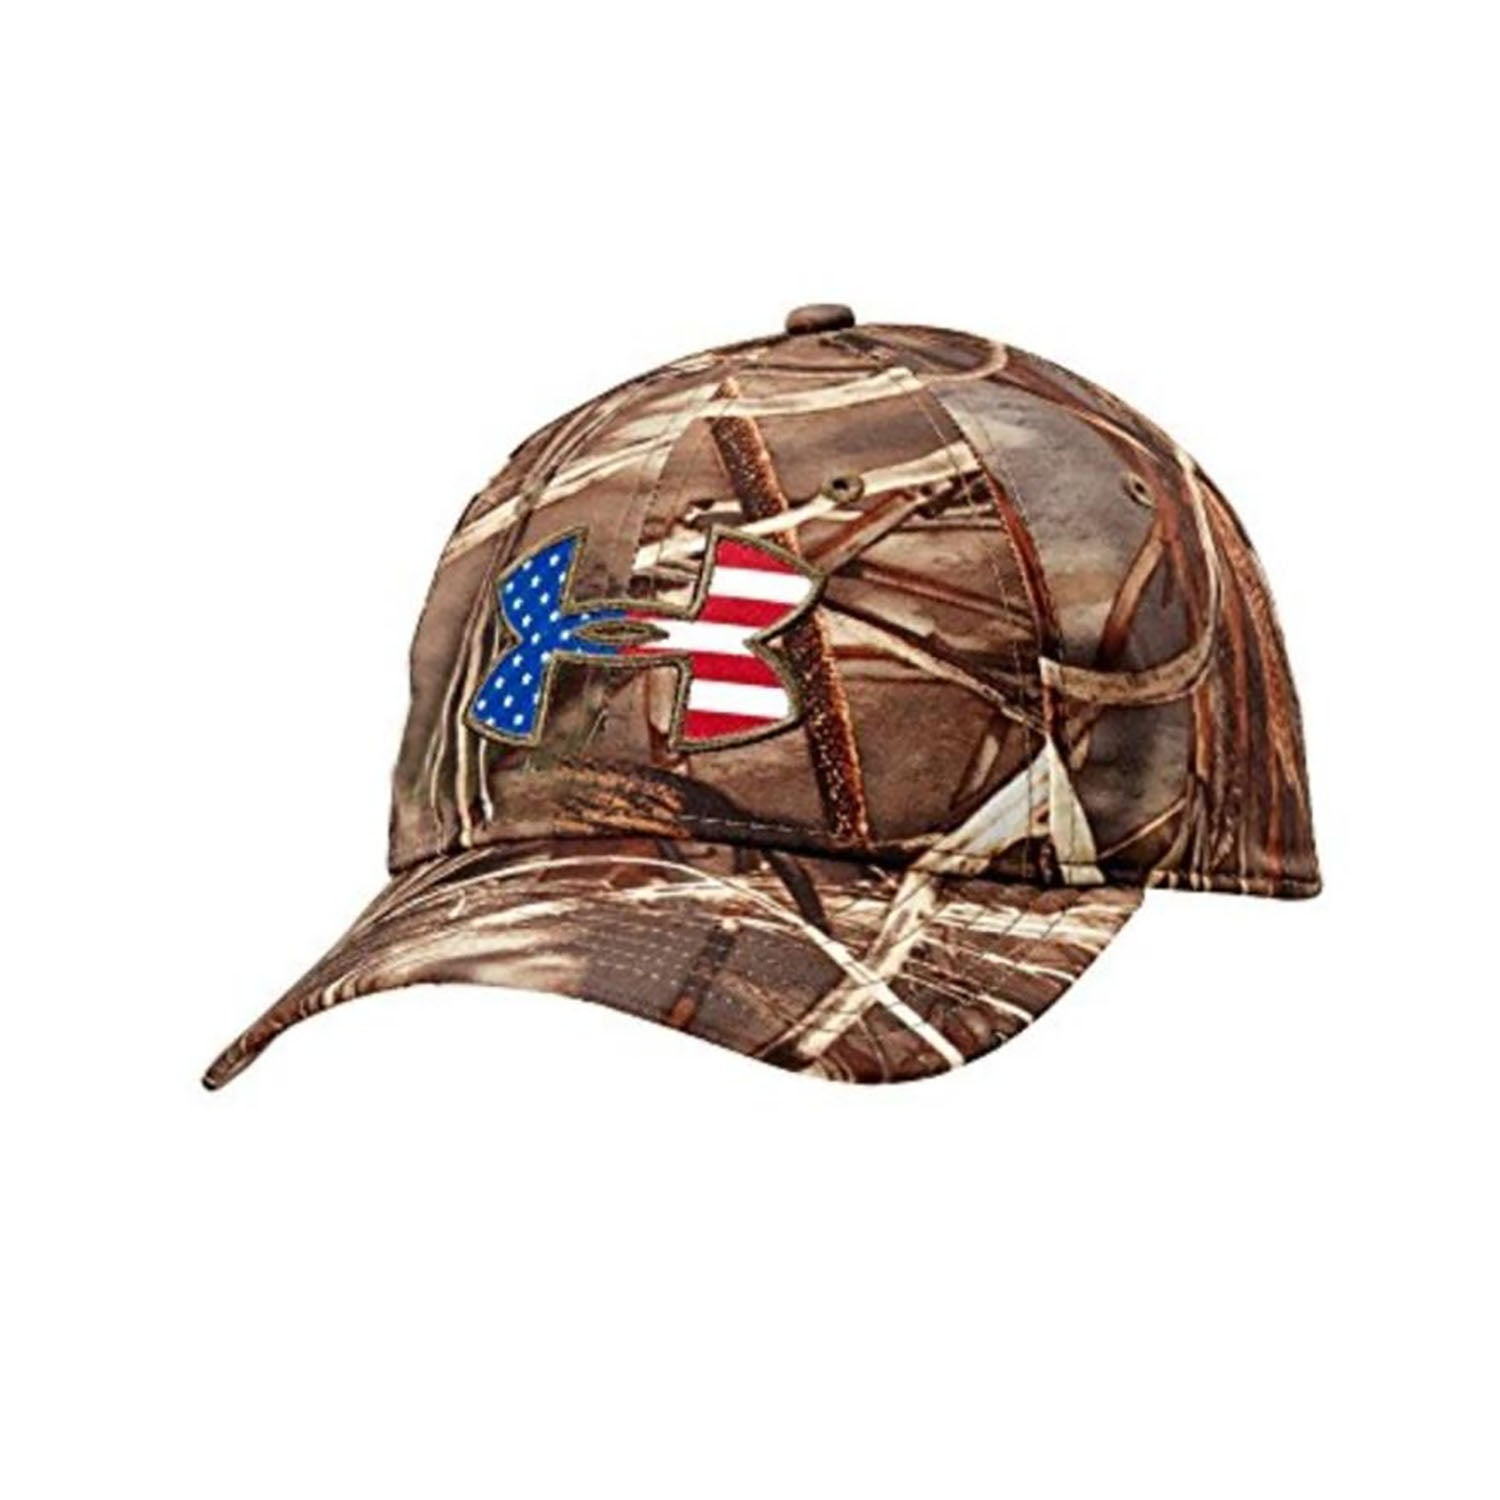 Under Armour Big Flag Logo Camo Hat - HYDRA Tactical 7915da58a34